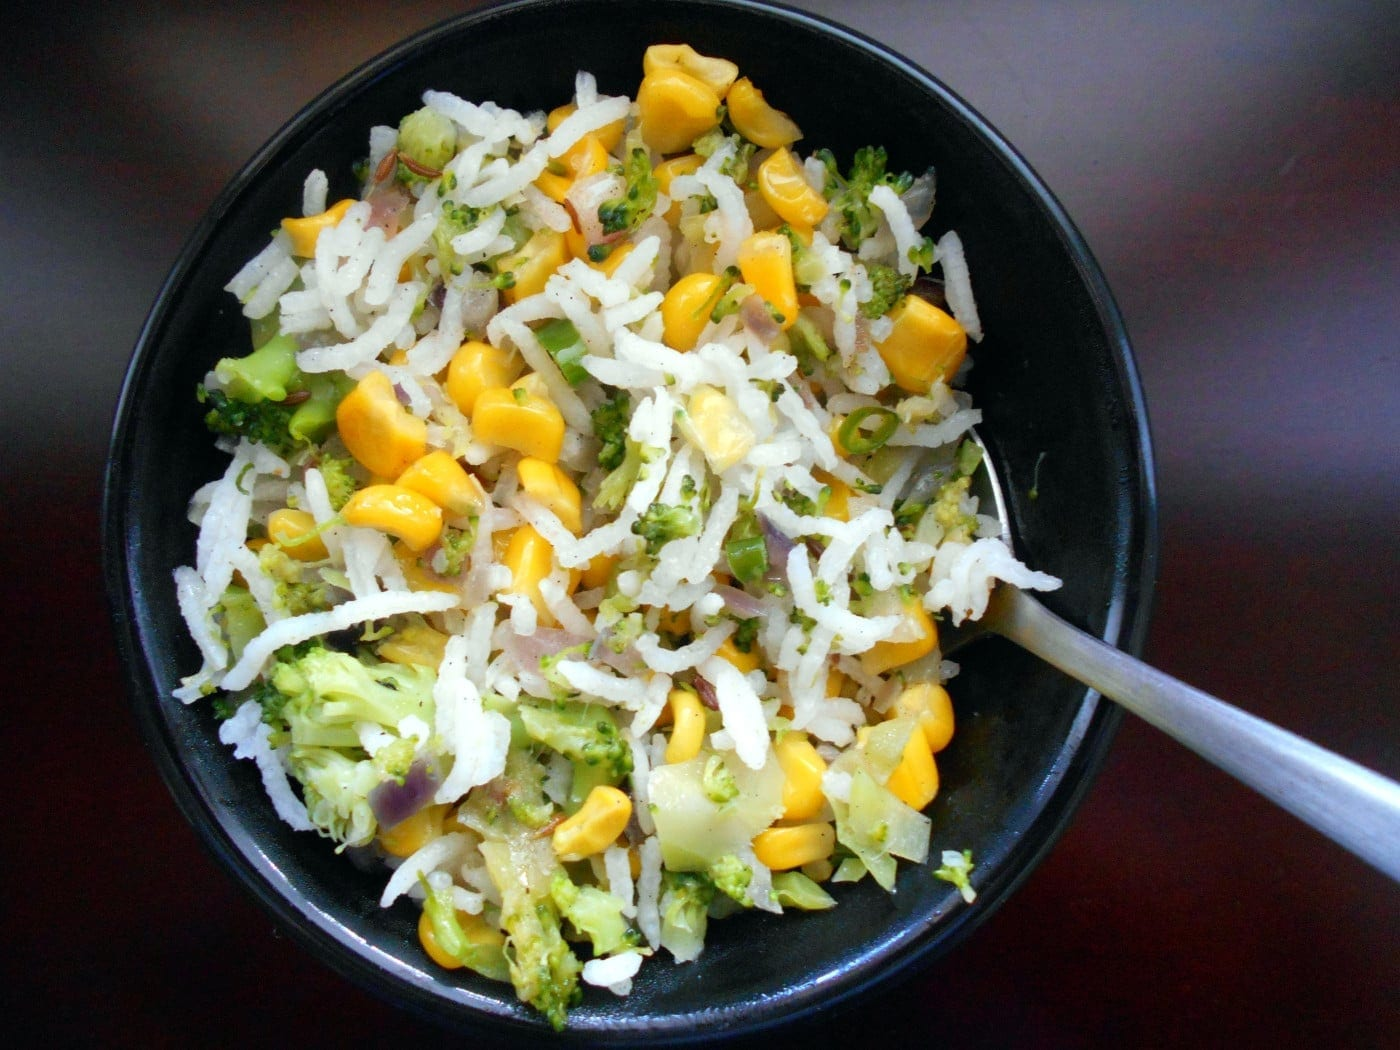 A small black bowl with rice, corn and broccoli with a spoon